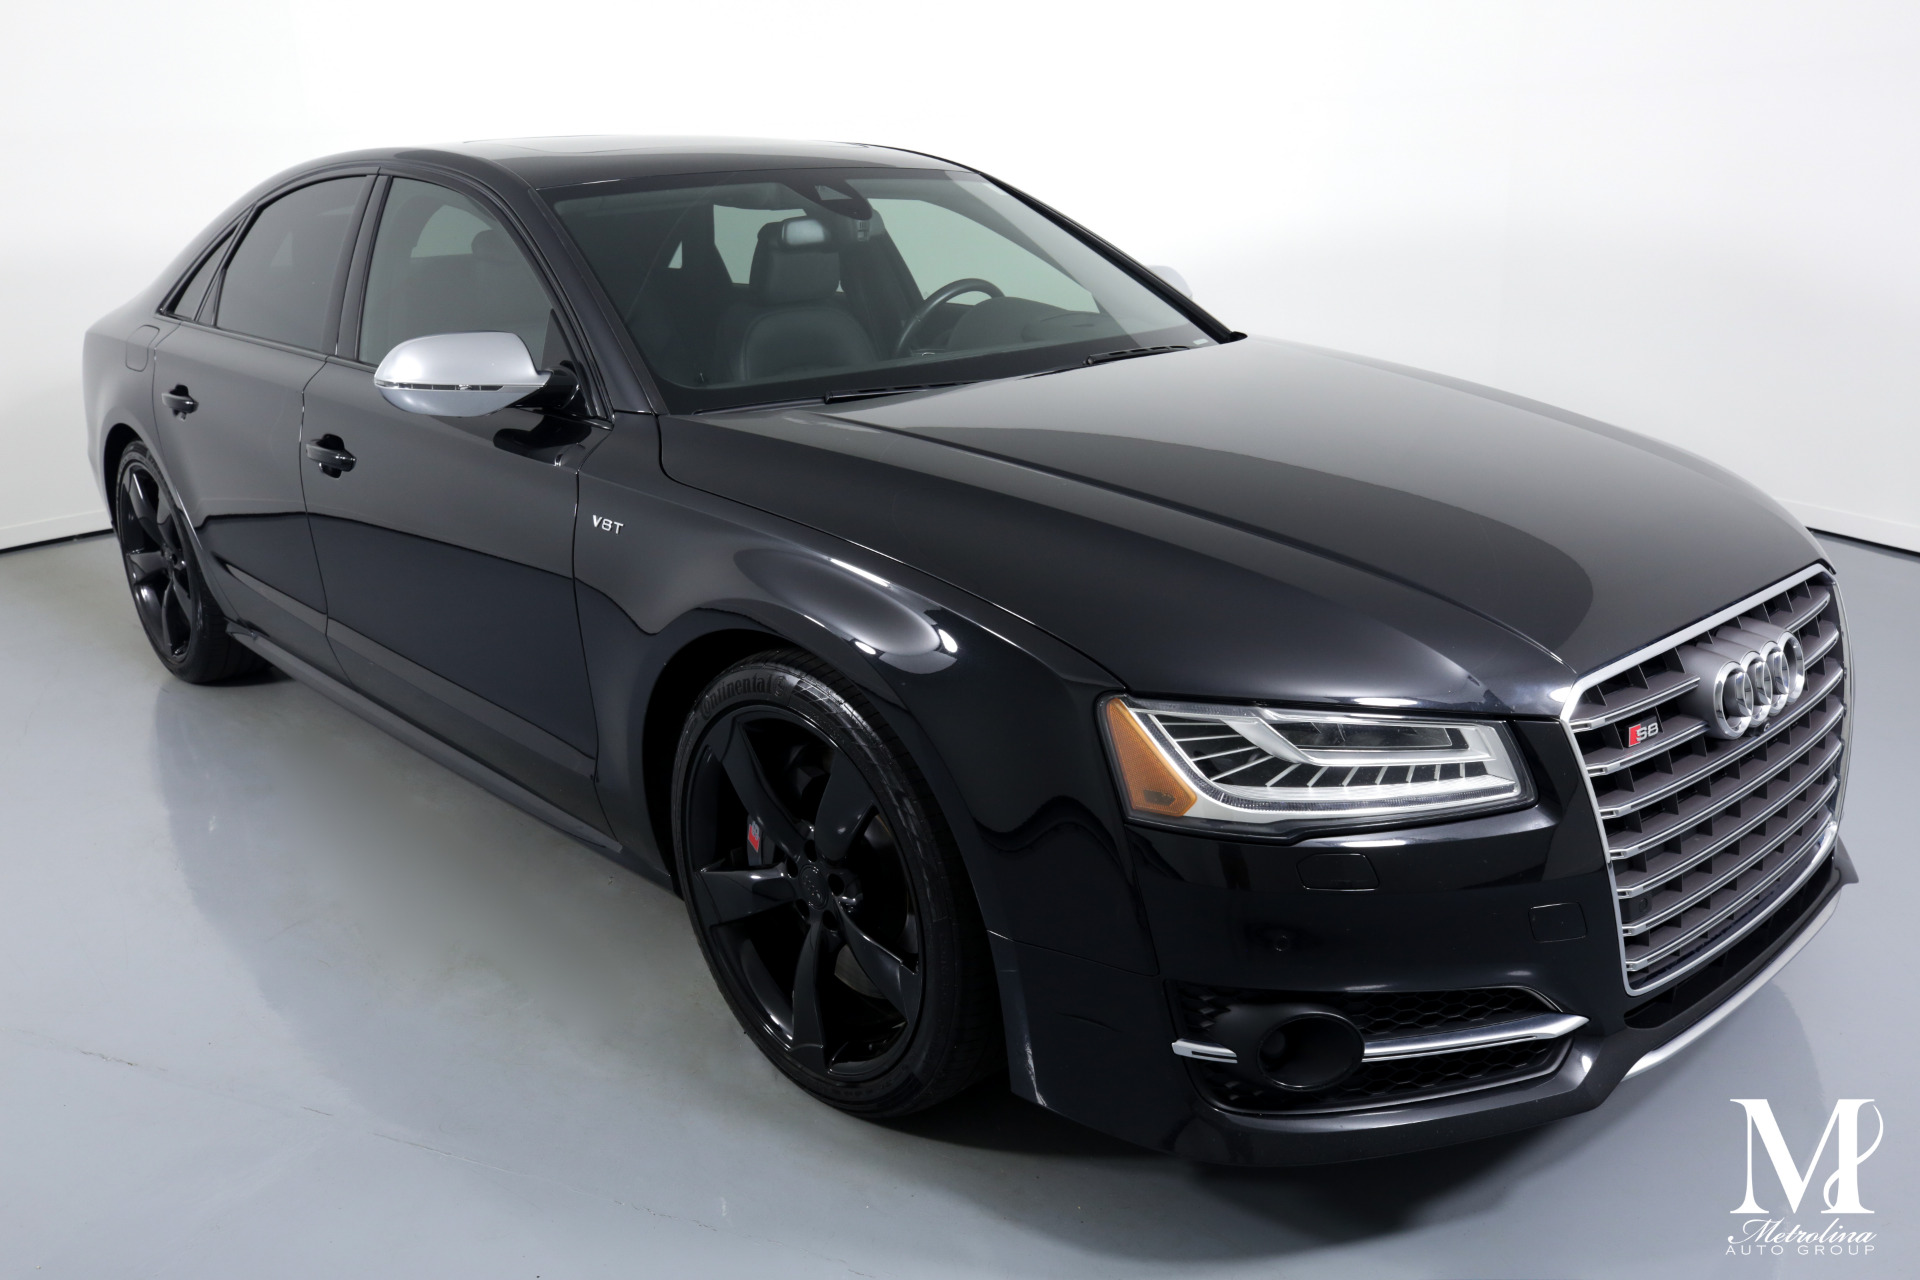 Used 2015 Audi S8 4.0T quattro for sale $39,996 at Metrolina Auto Group in Charlotte NC 28217 - 2